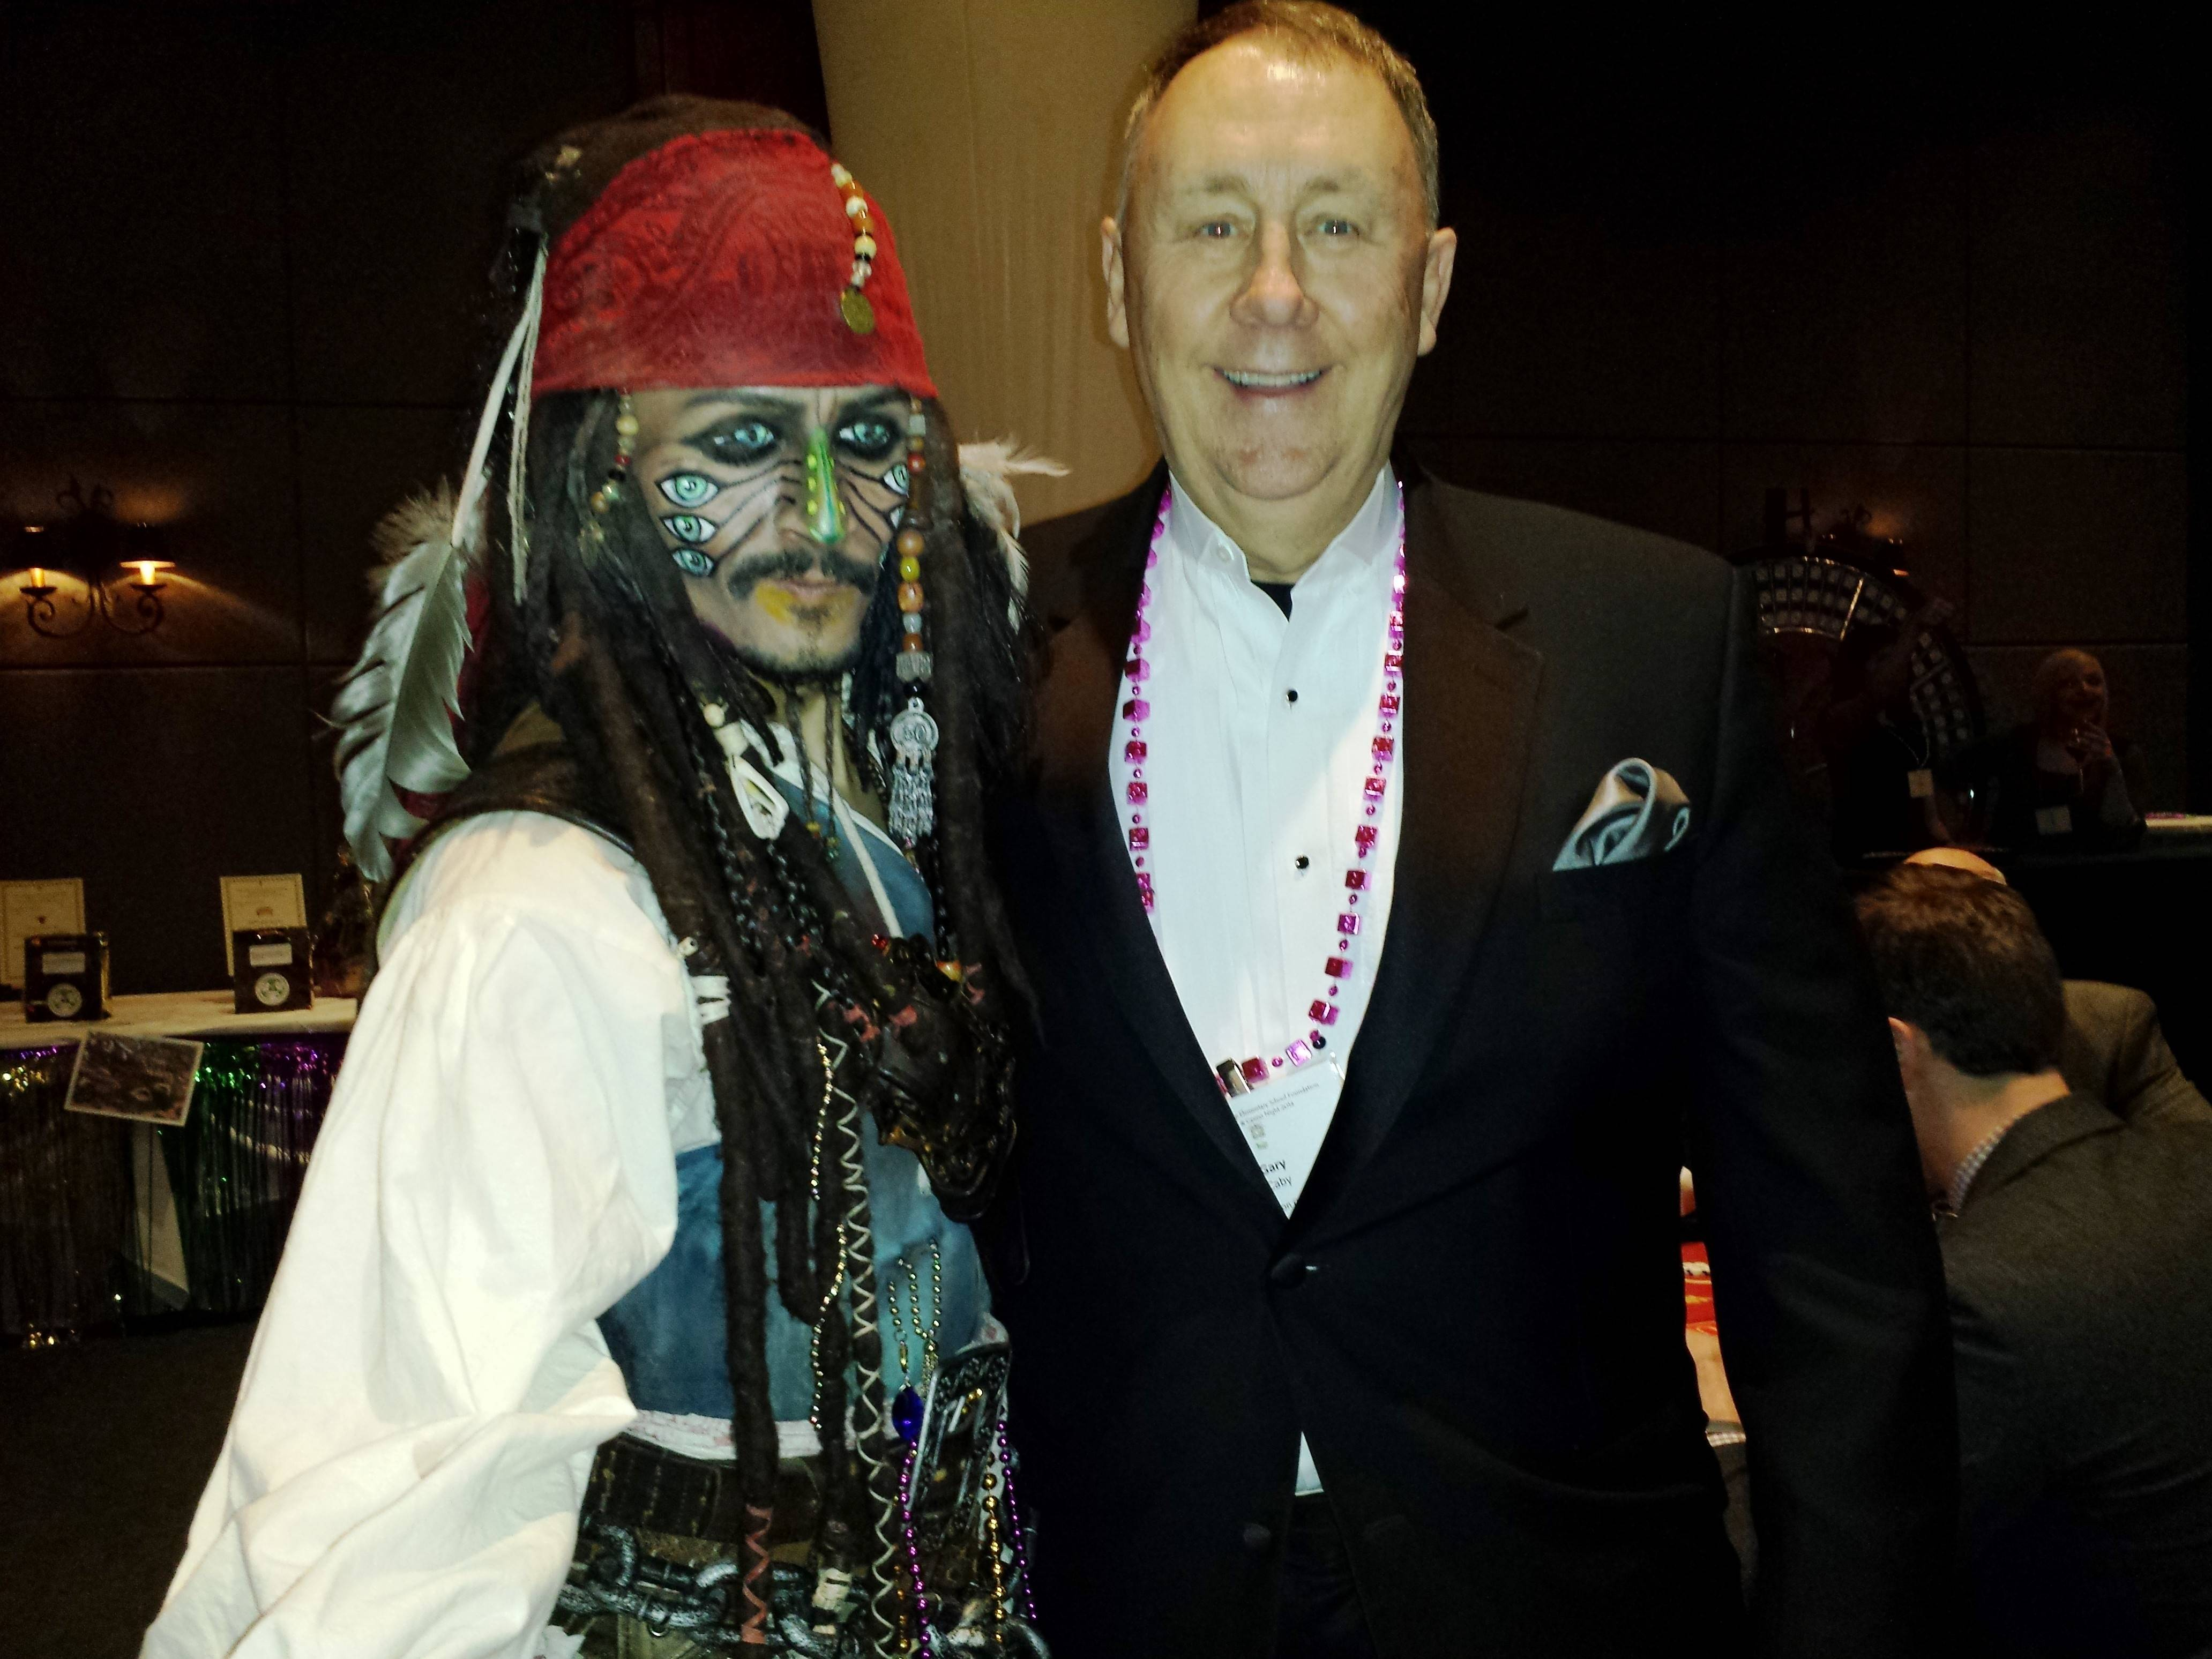 Schaumburg Township Elementary School Foundation chairman Gary Caby and Captain Jack Sparrow greet guests at the foundation's gala held Feb. 28.